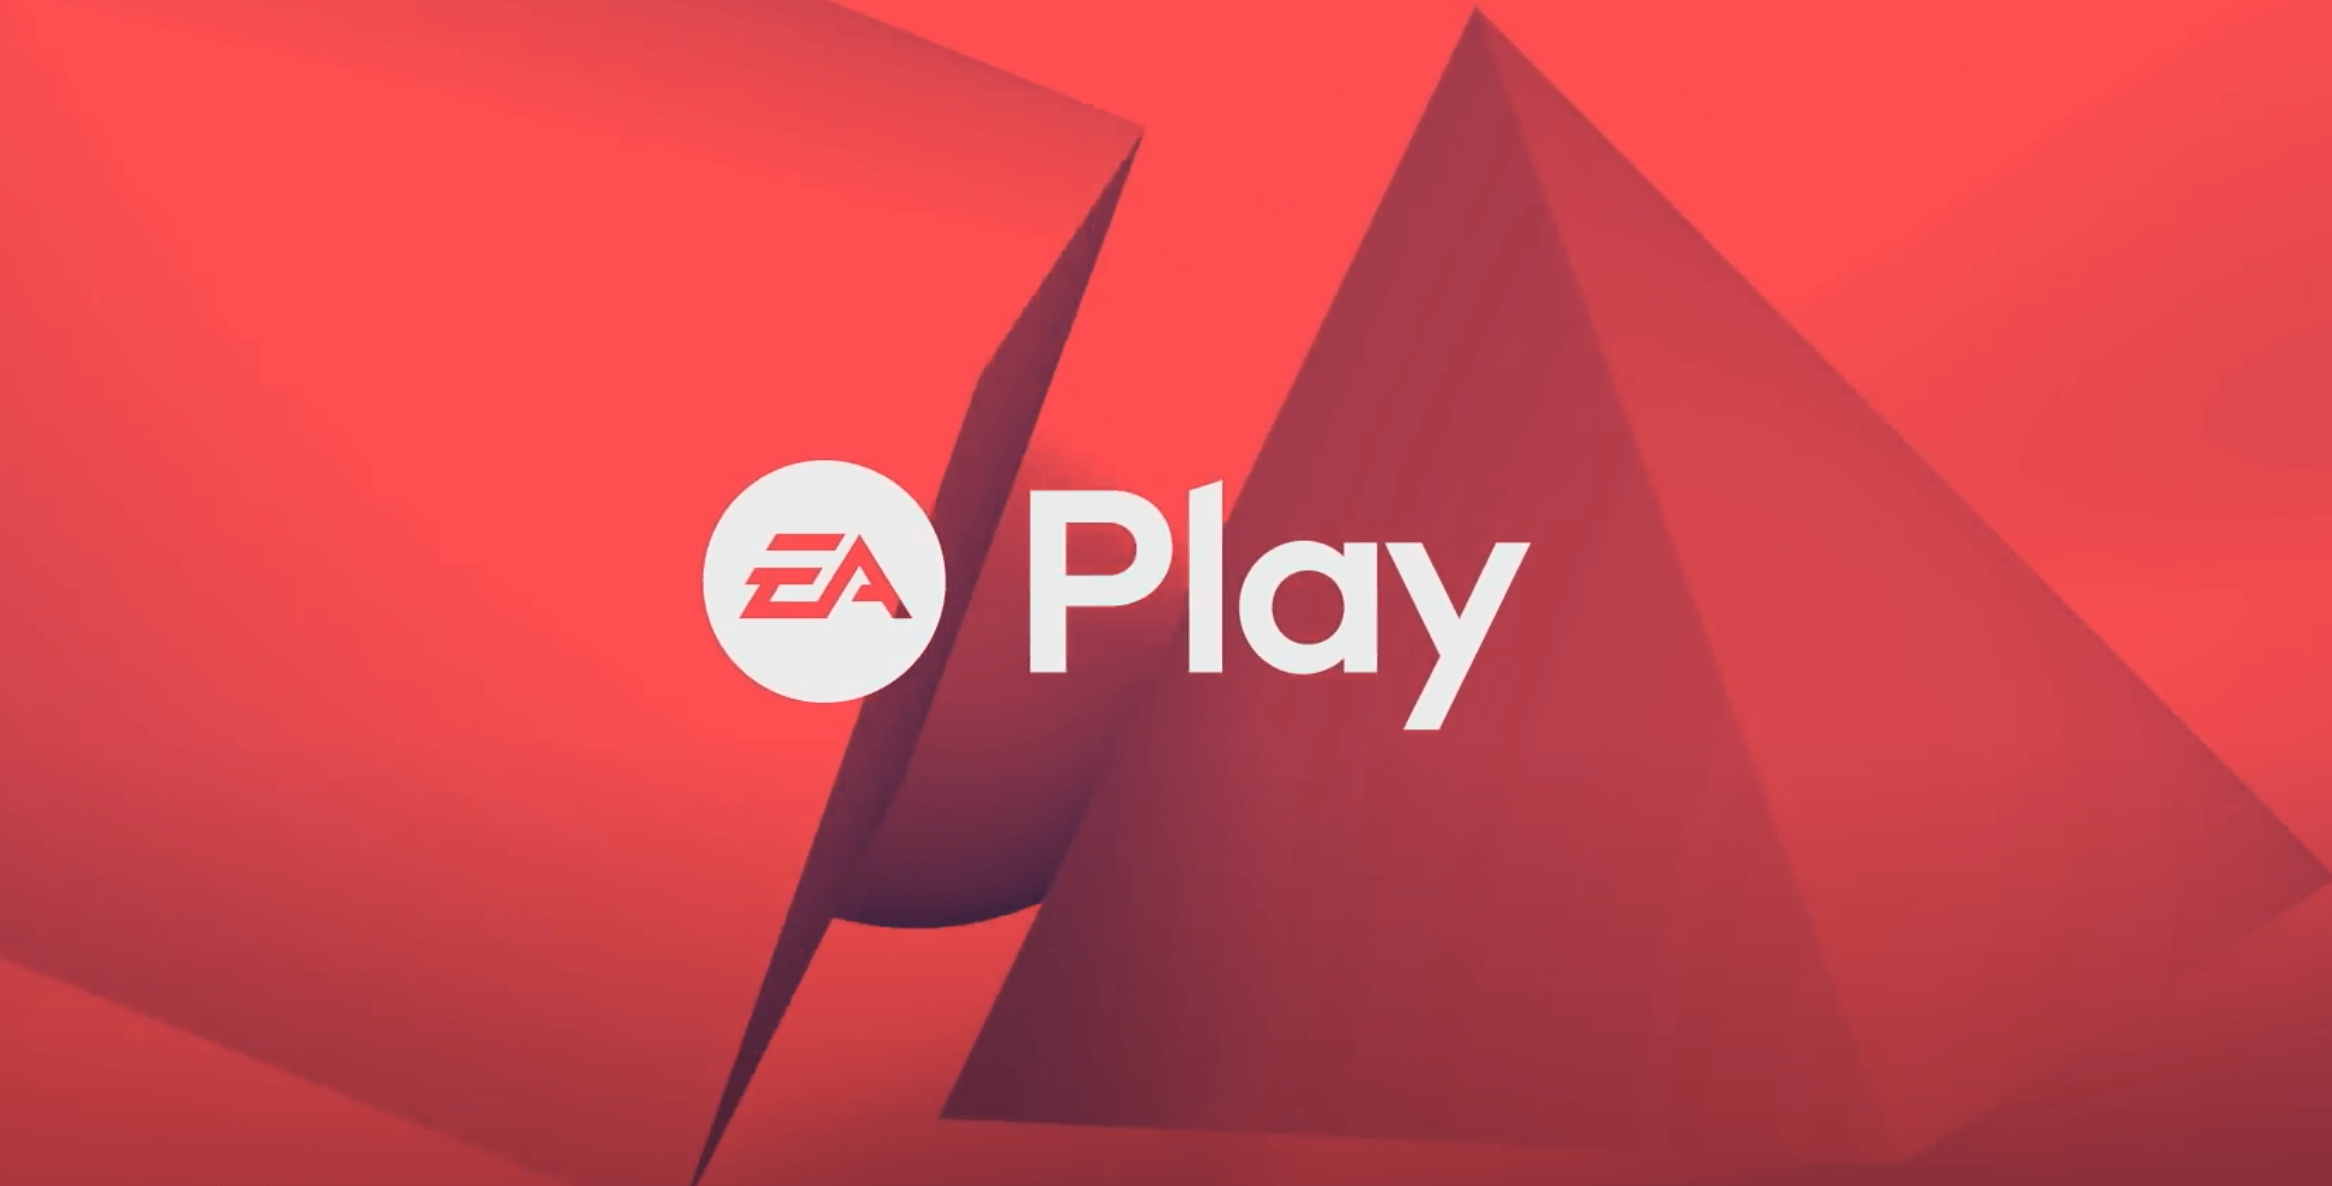 Origin and Access services get rebranded as EA Play next week